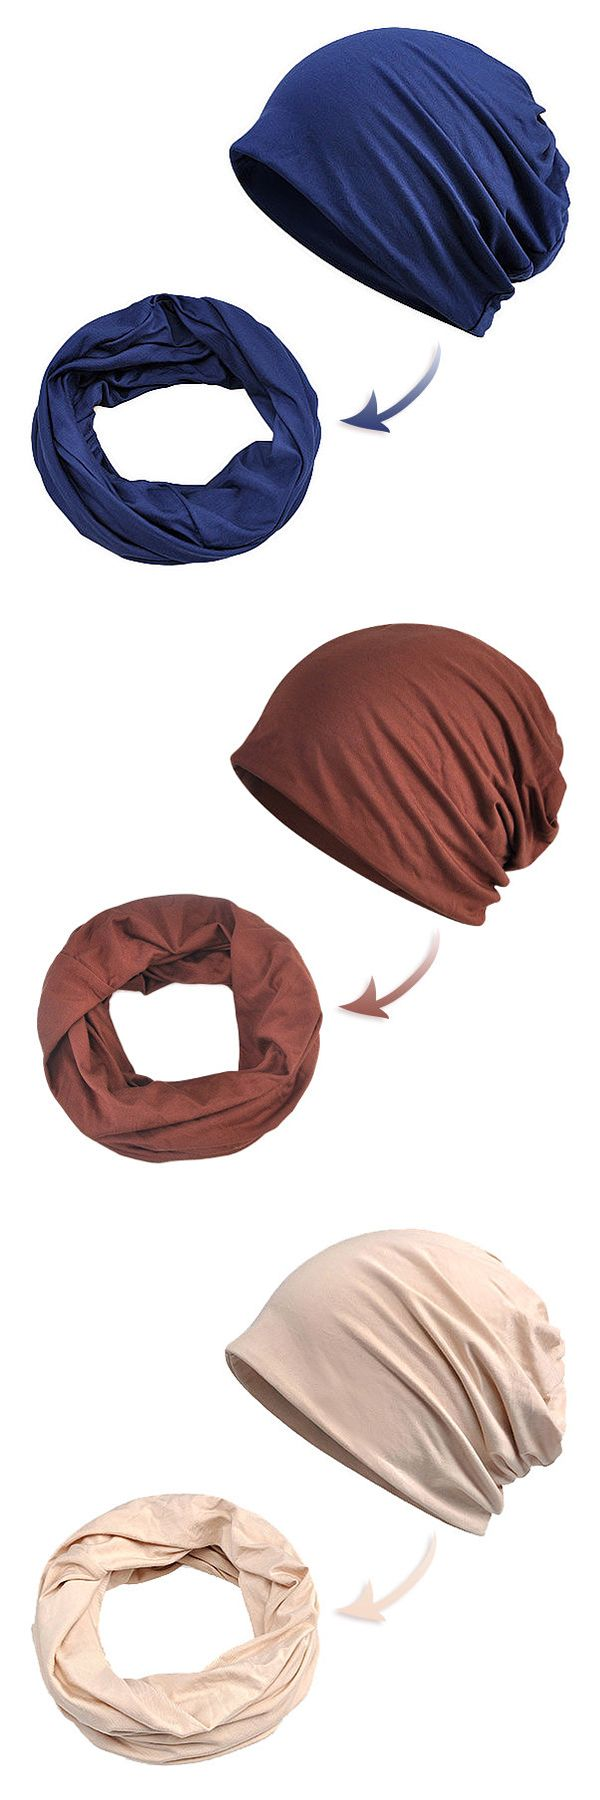 Women Multi-function Breathable Cotton Beanie Hats Pure Color Beanie Casual Windproof Cap #fashion #style #hat #winter